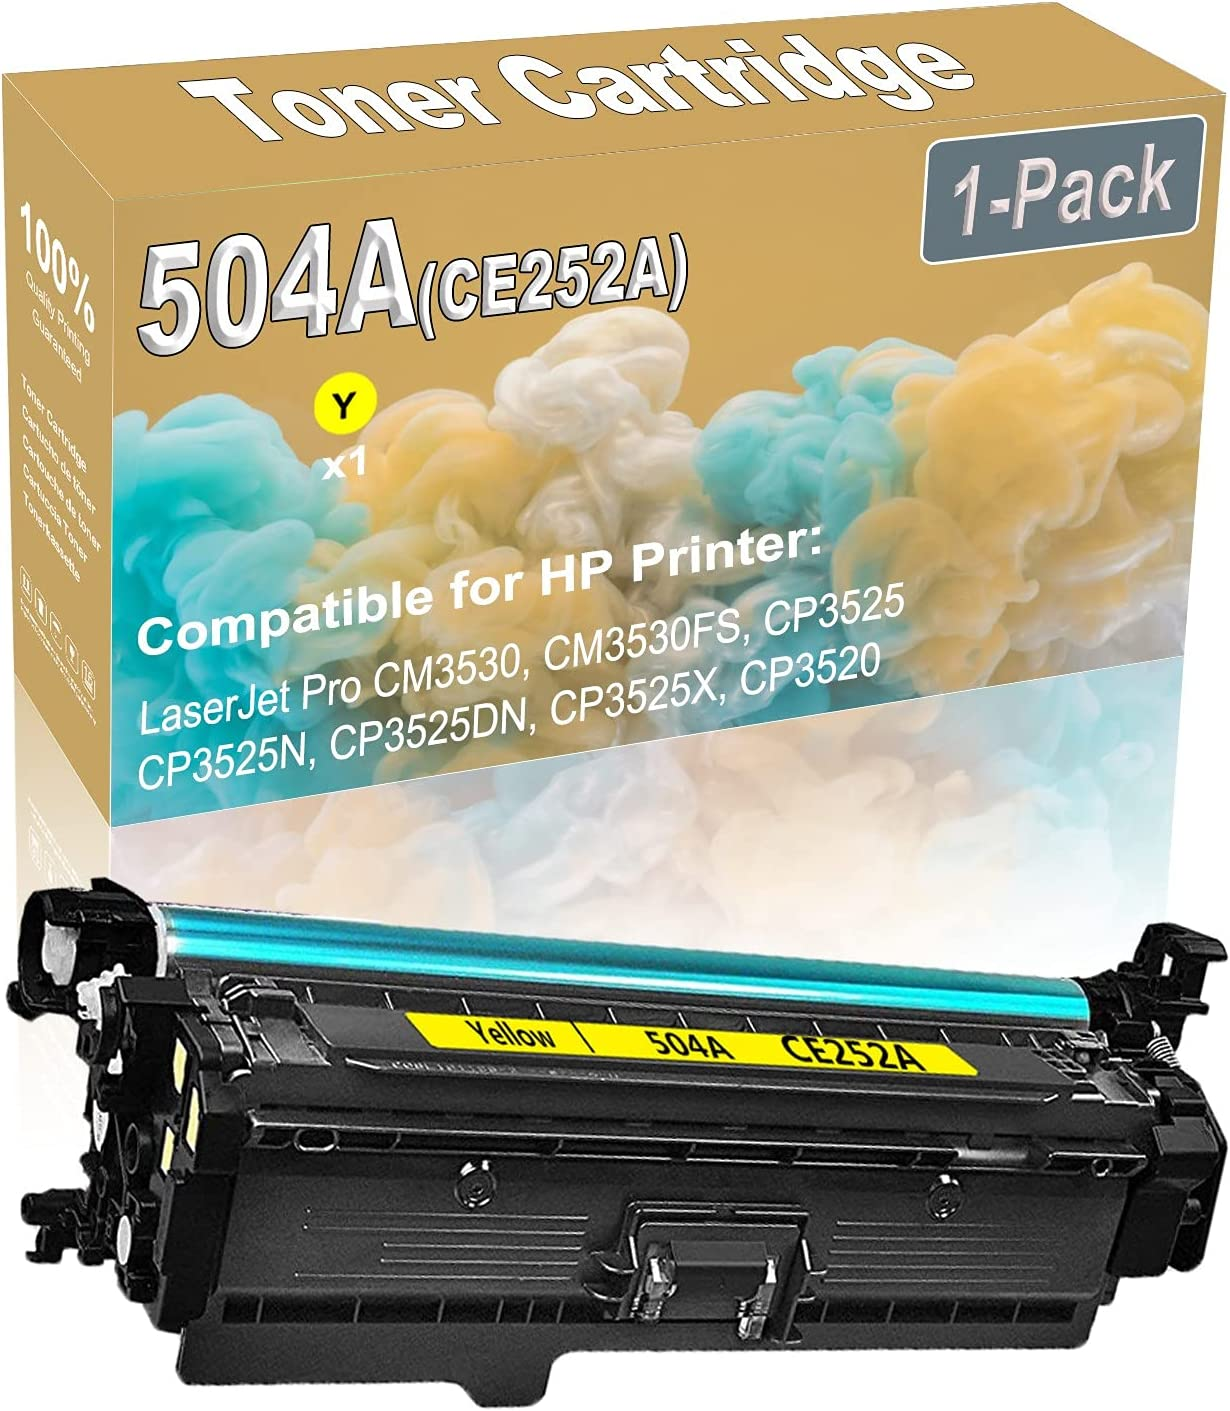 1-Pack (Yellow) Compatible CM3530 CM3530FS Laser Printer Toner Cartridge (High Capacity) Replacement for HP 504A (CE252A) Printer Toner Cartridge